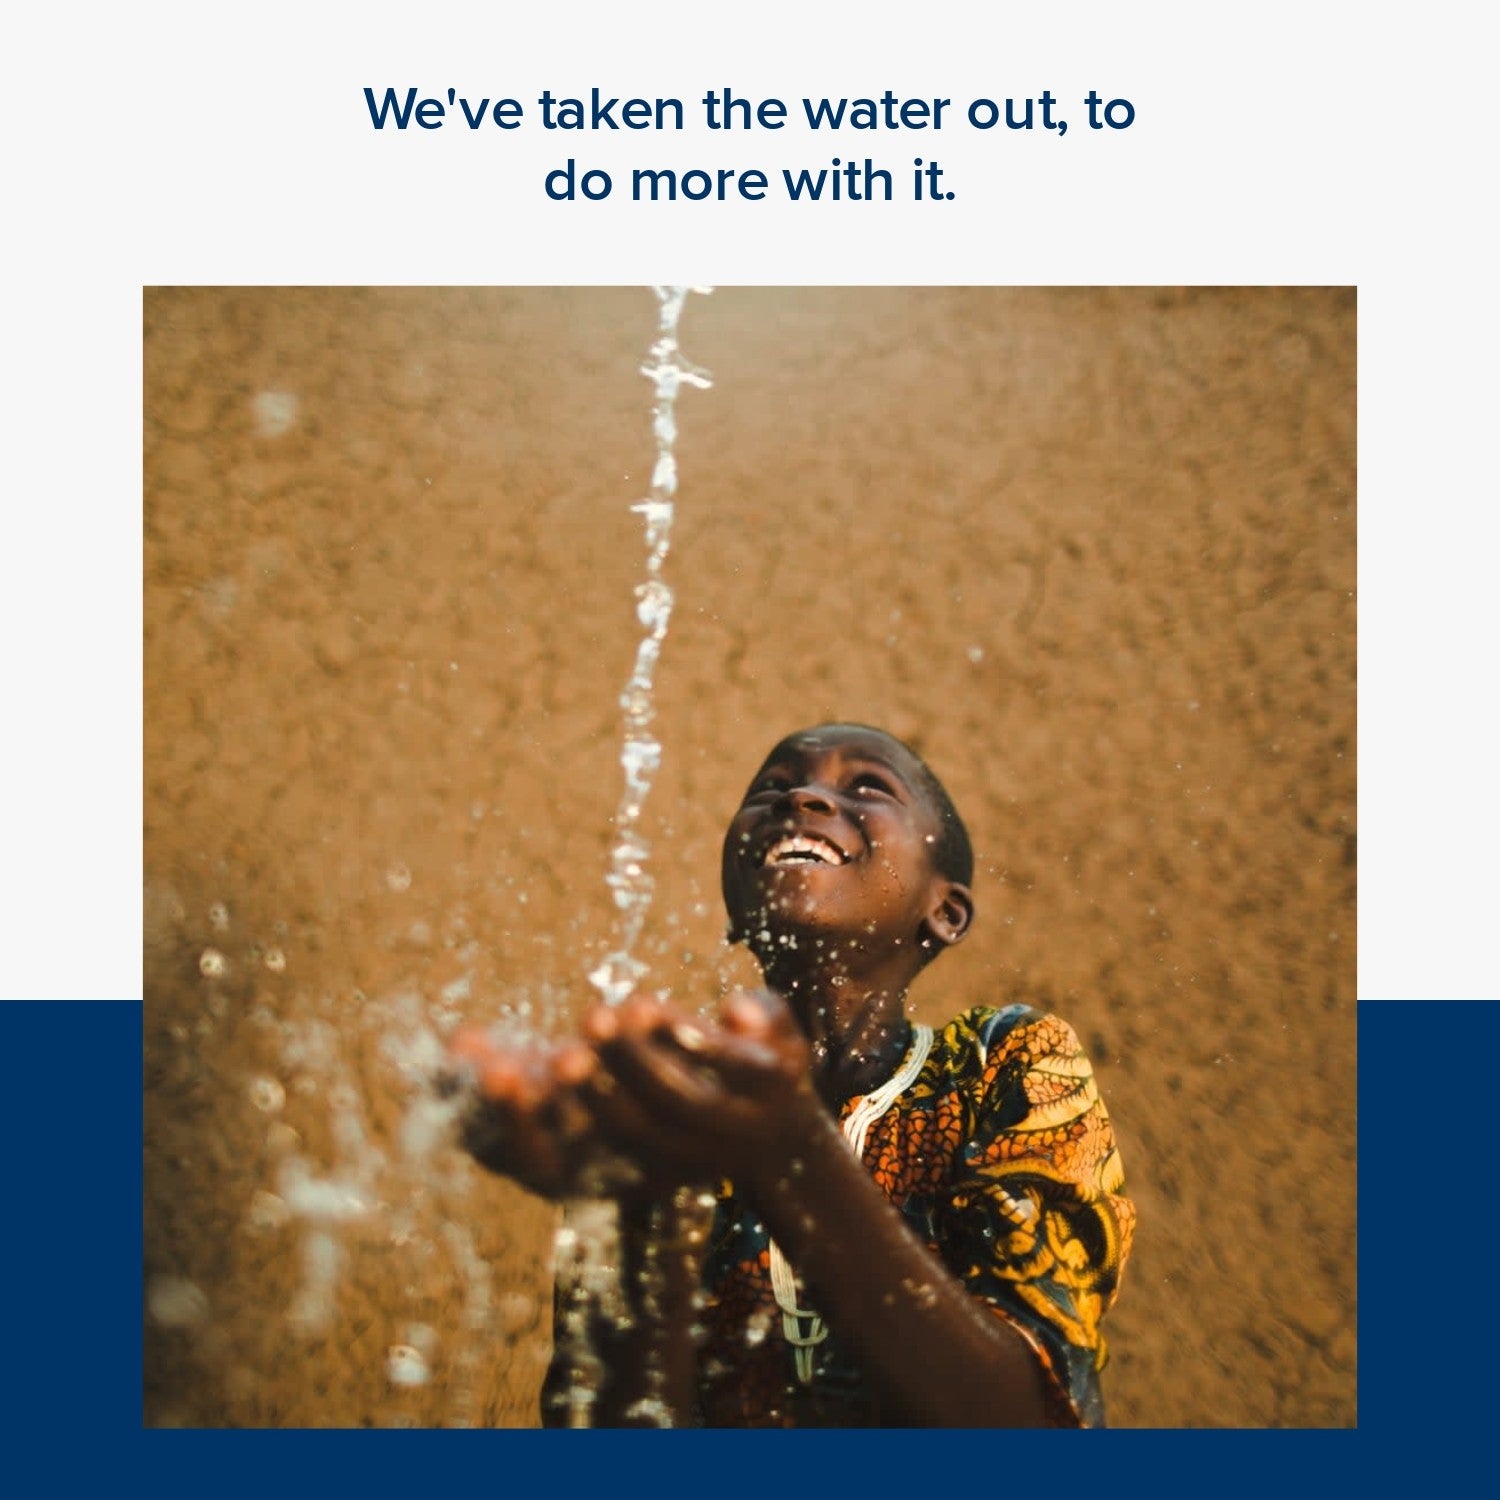 We donate 1% of our brand sales to Charity: water. Giving water access to those who need it the most. Beauty that cares. Go waterless